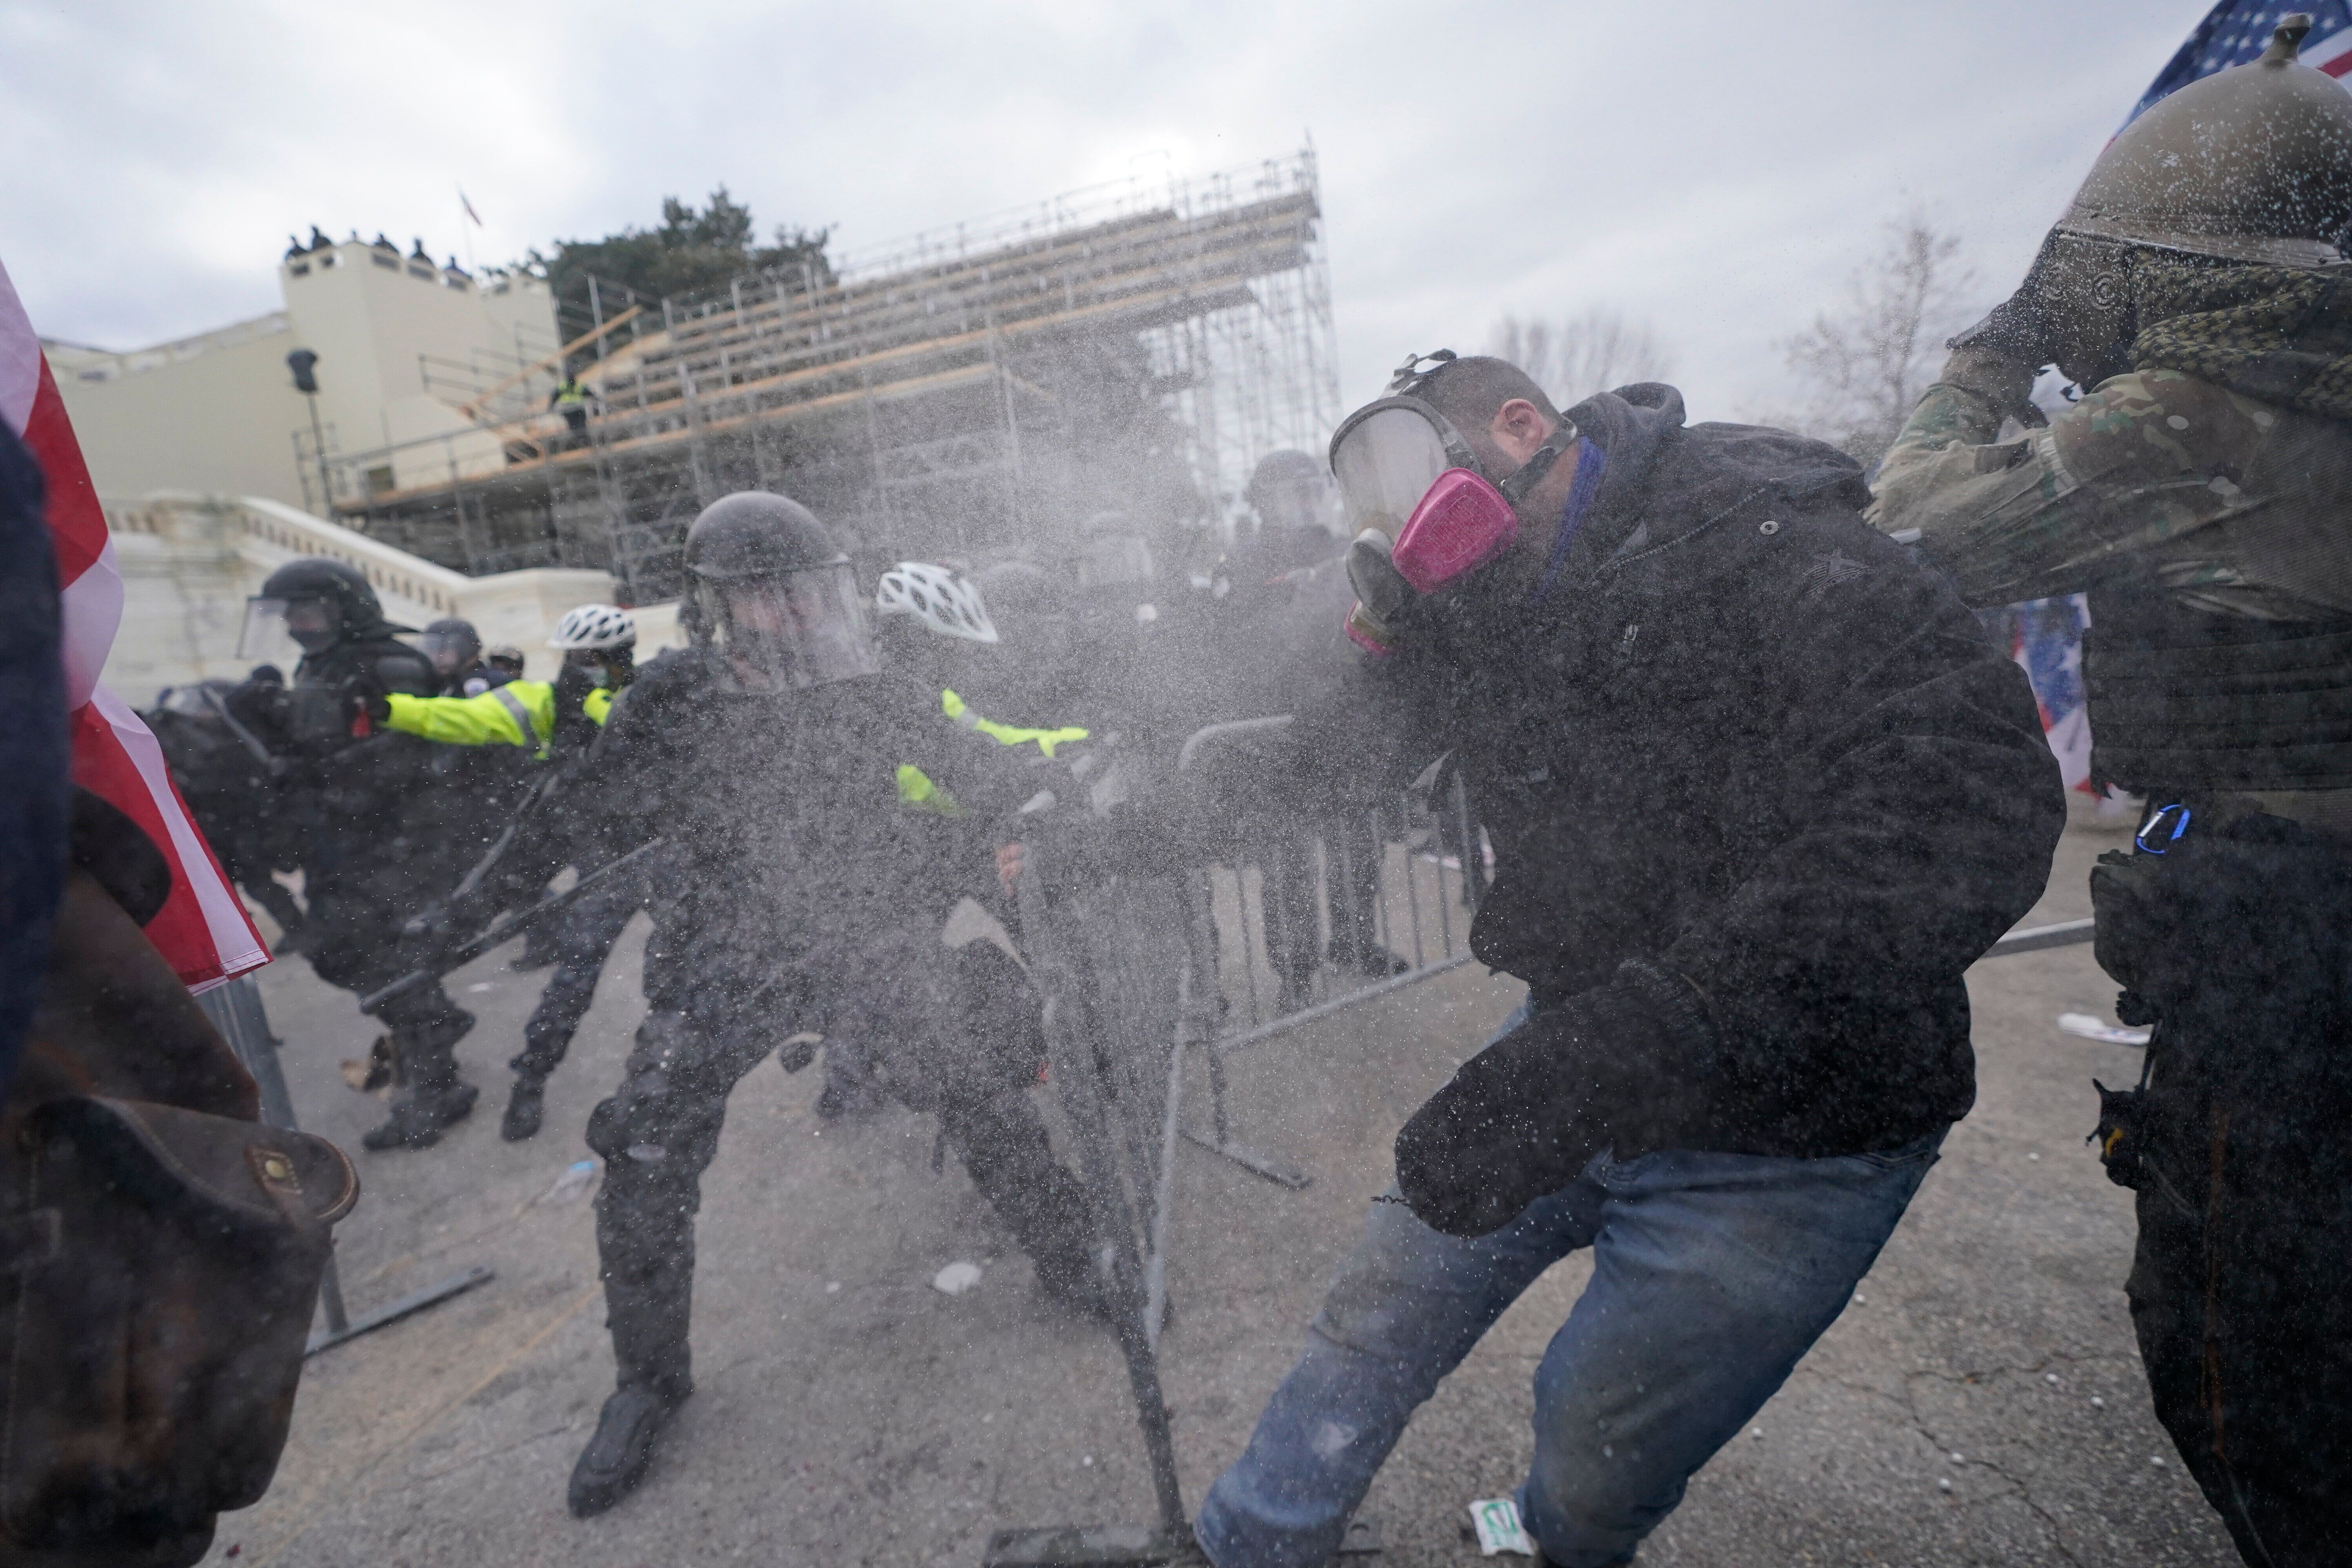 Trump supporters try to break through a police barrier, Wednesday, Jan. 6, at the Capitol in Washington, D.C.